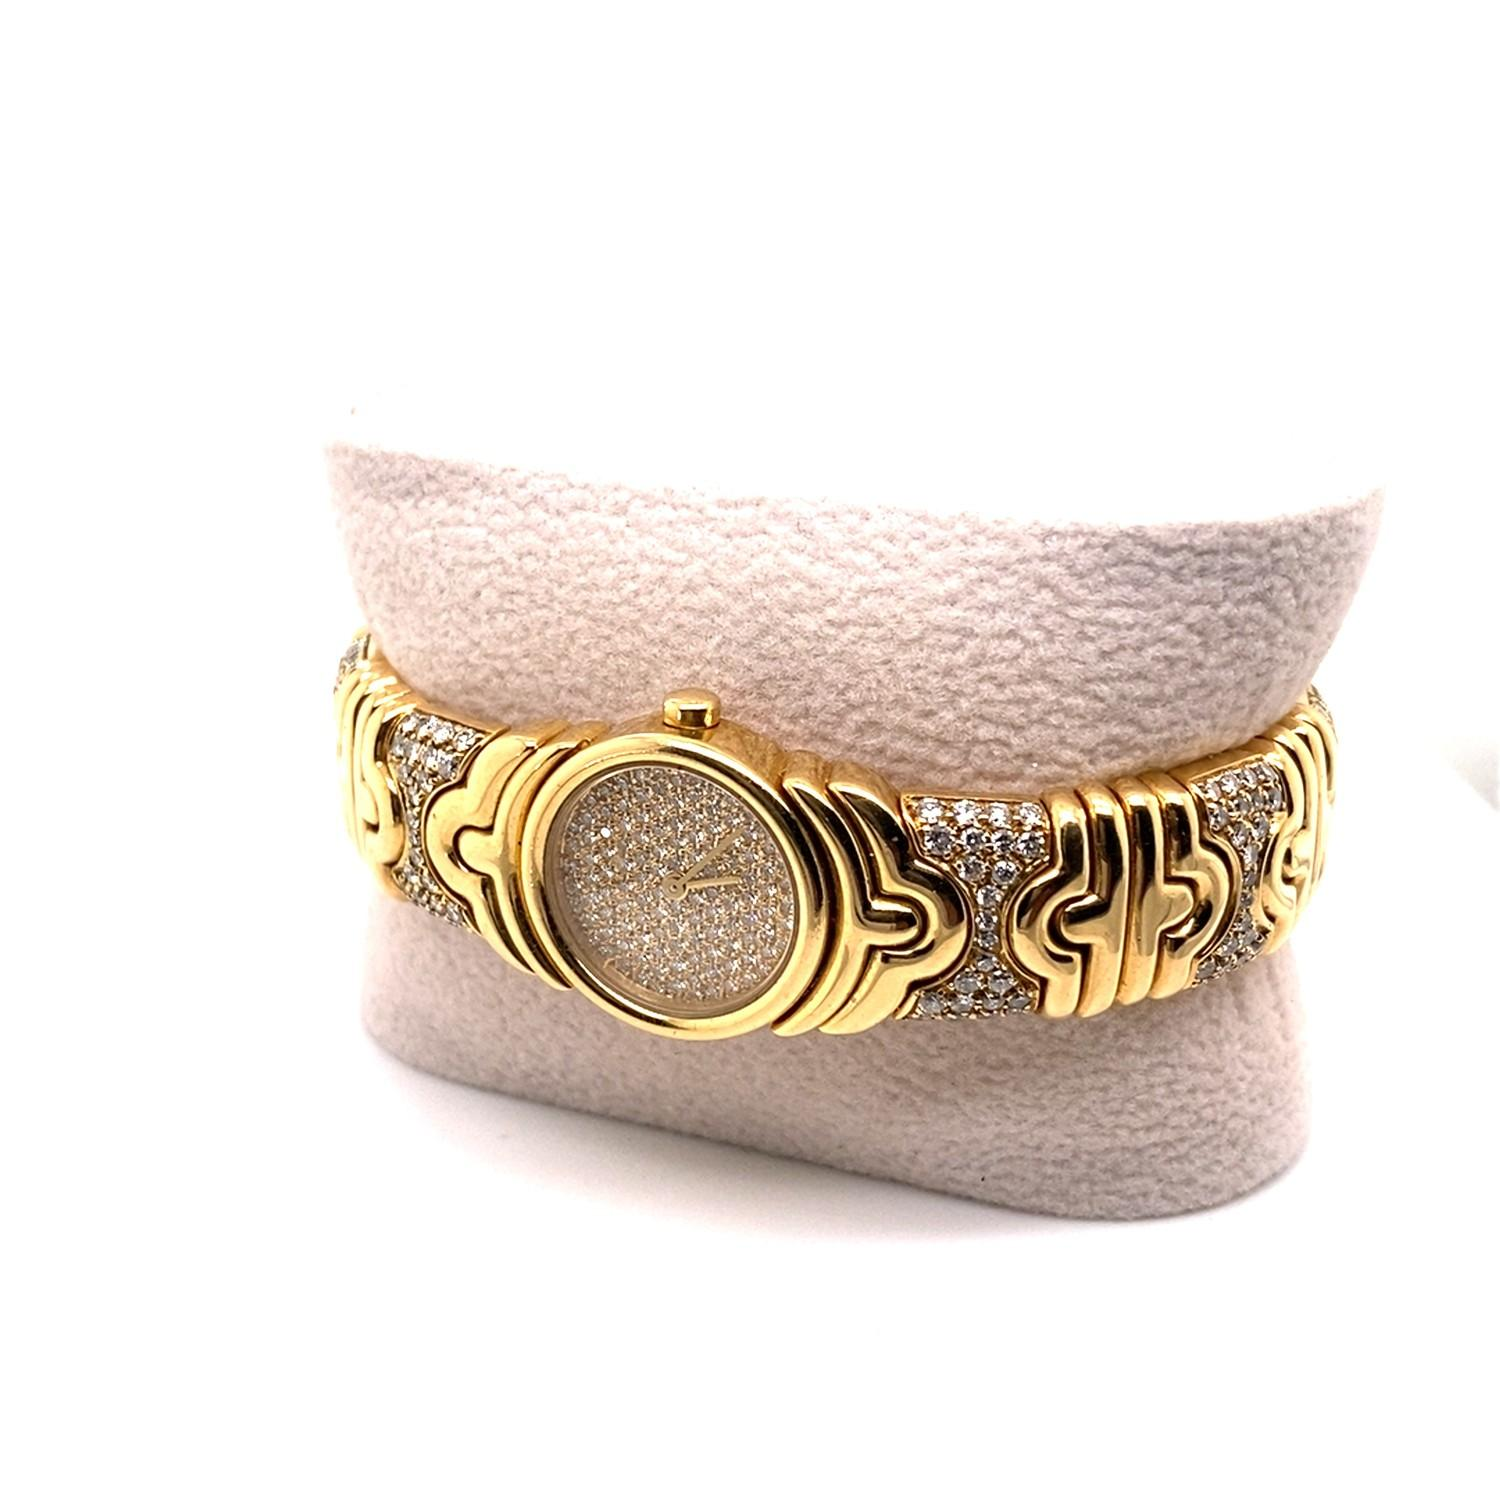 A Vintage Bulgari Parentesi Cuff Watch in the forn of a cuff mounted in 18ct gold and platinum. - Image 3 of 4